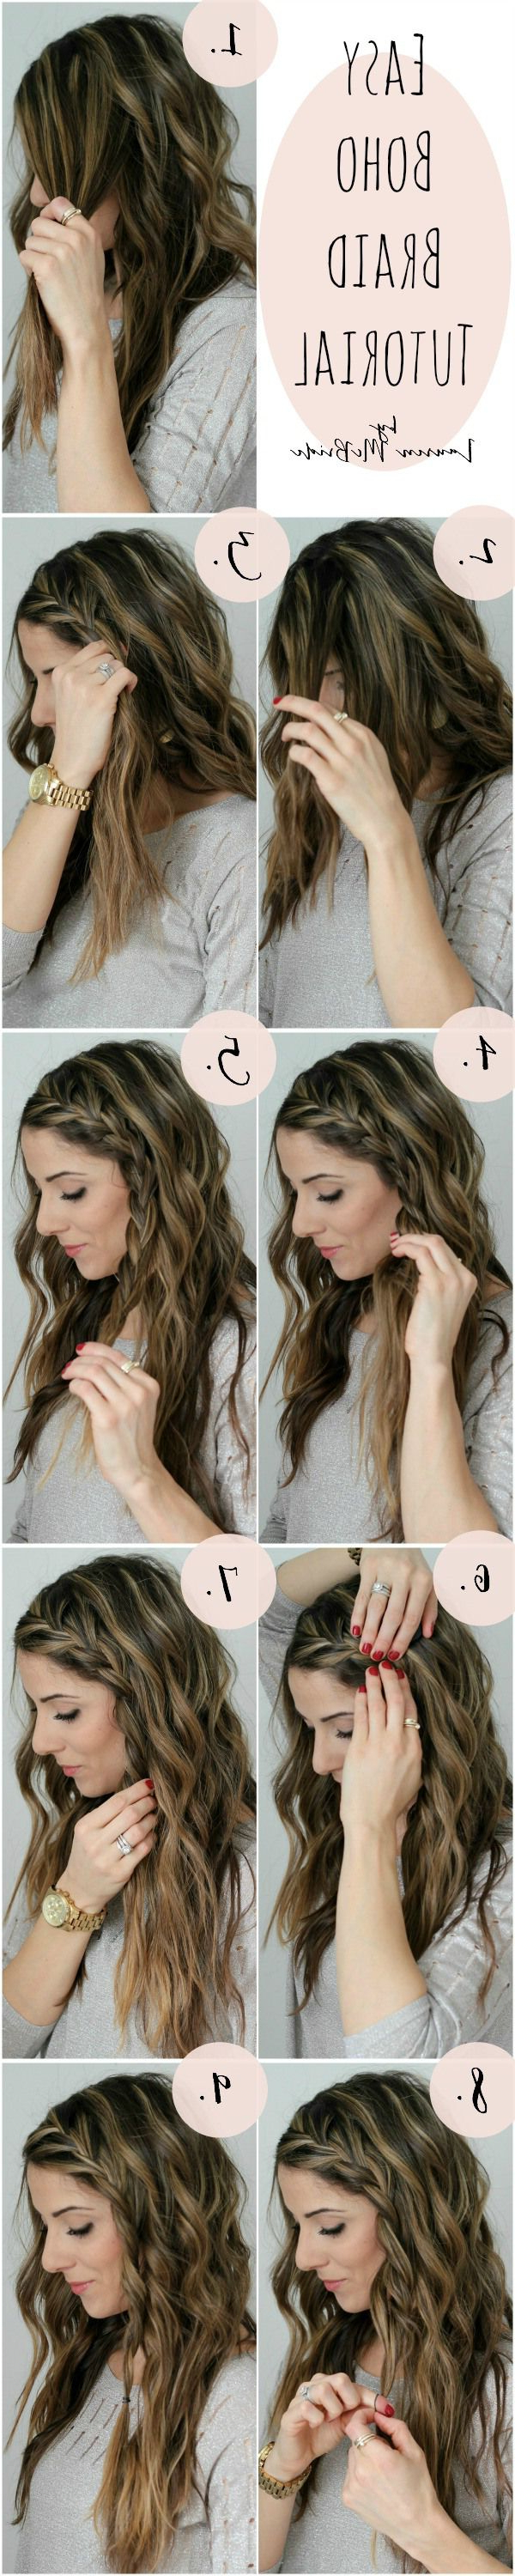 30 Boho Chic Hairstyles For 2019 – Pretty Designs In 2018 Bohemian Medium Hairstyles (Gallery 14 of 20)